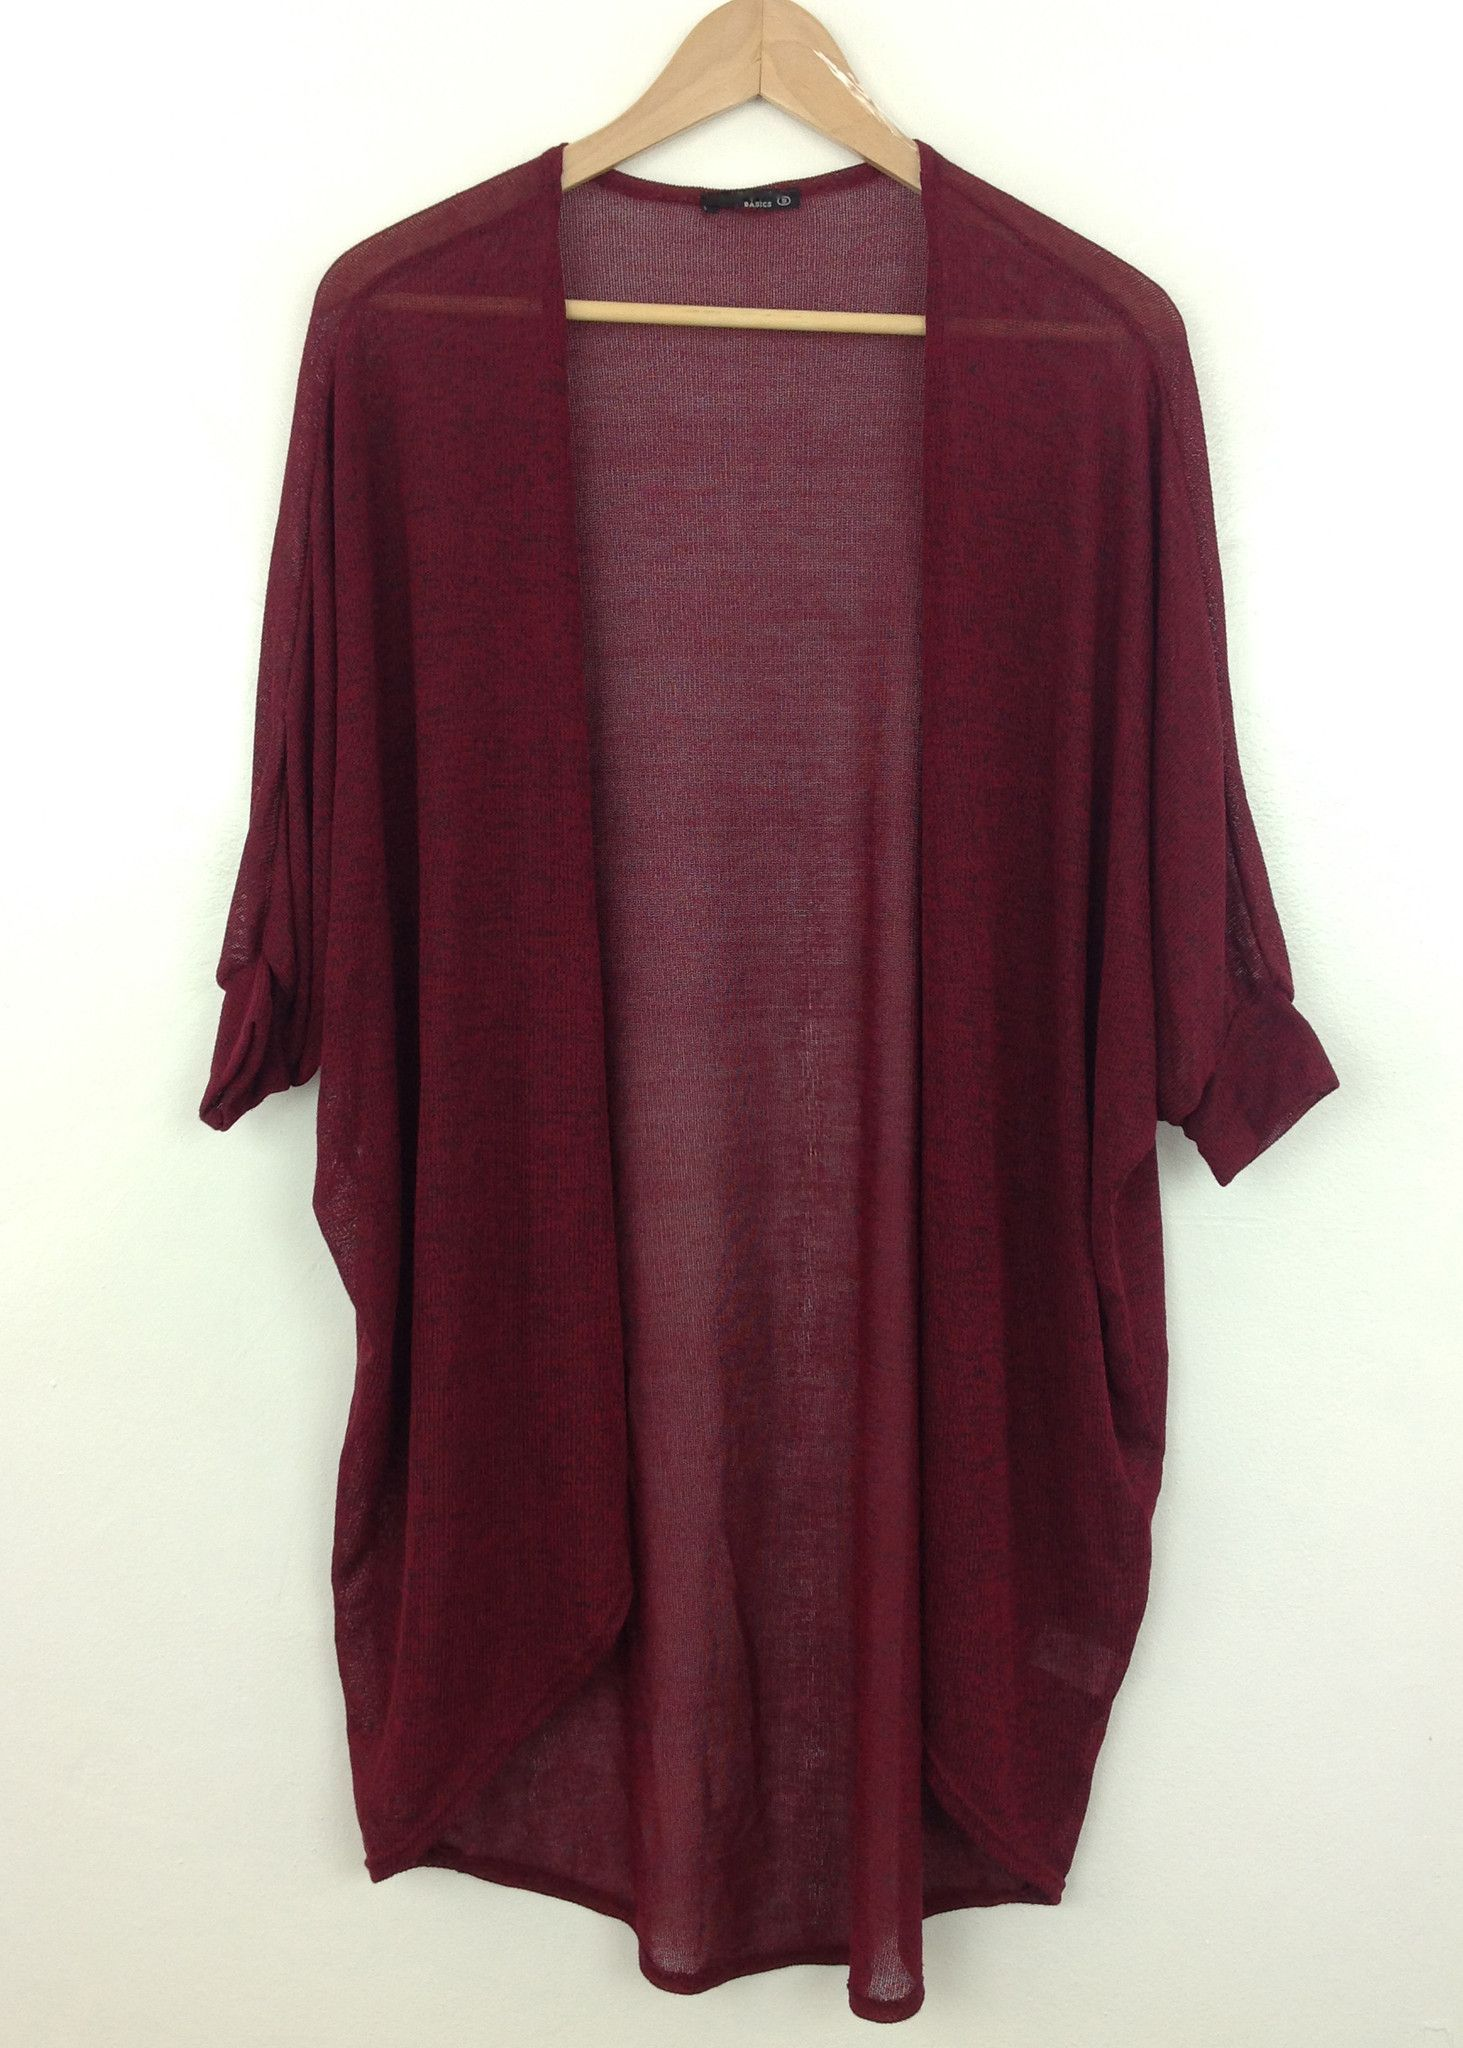 burgundy longline batwing cardigan | Wear can I get this ...